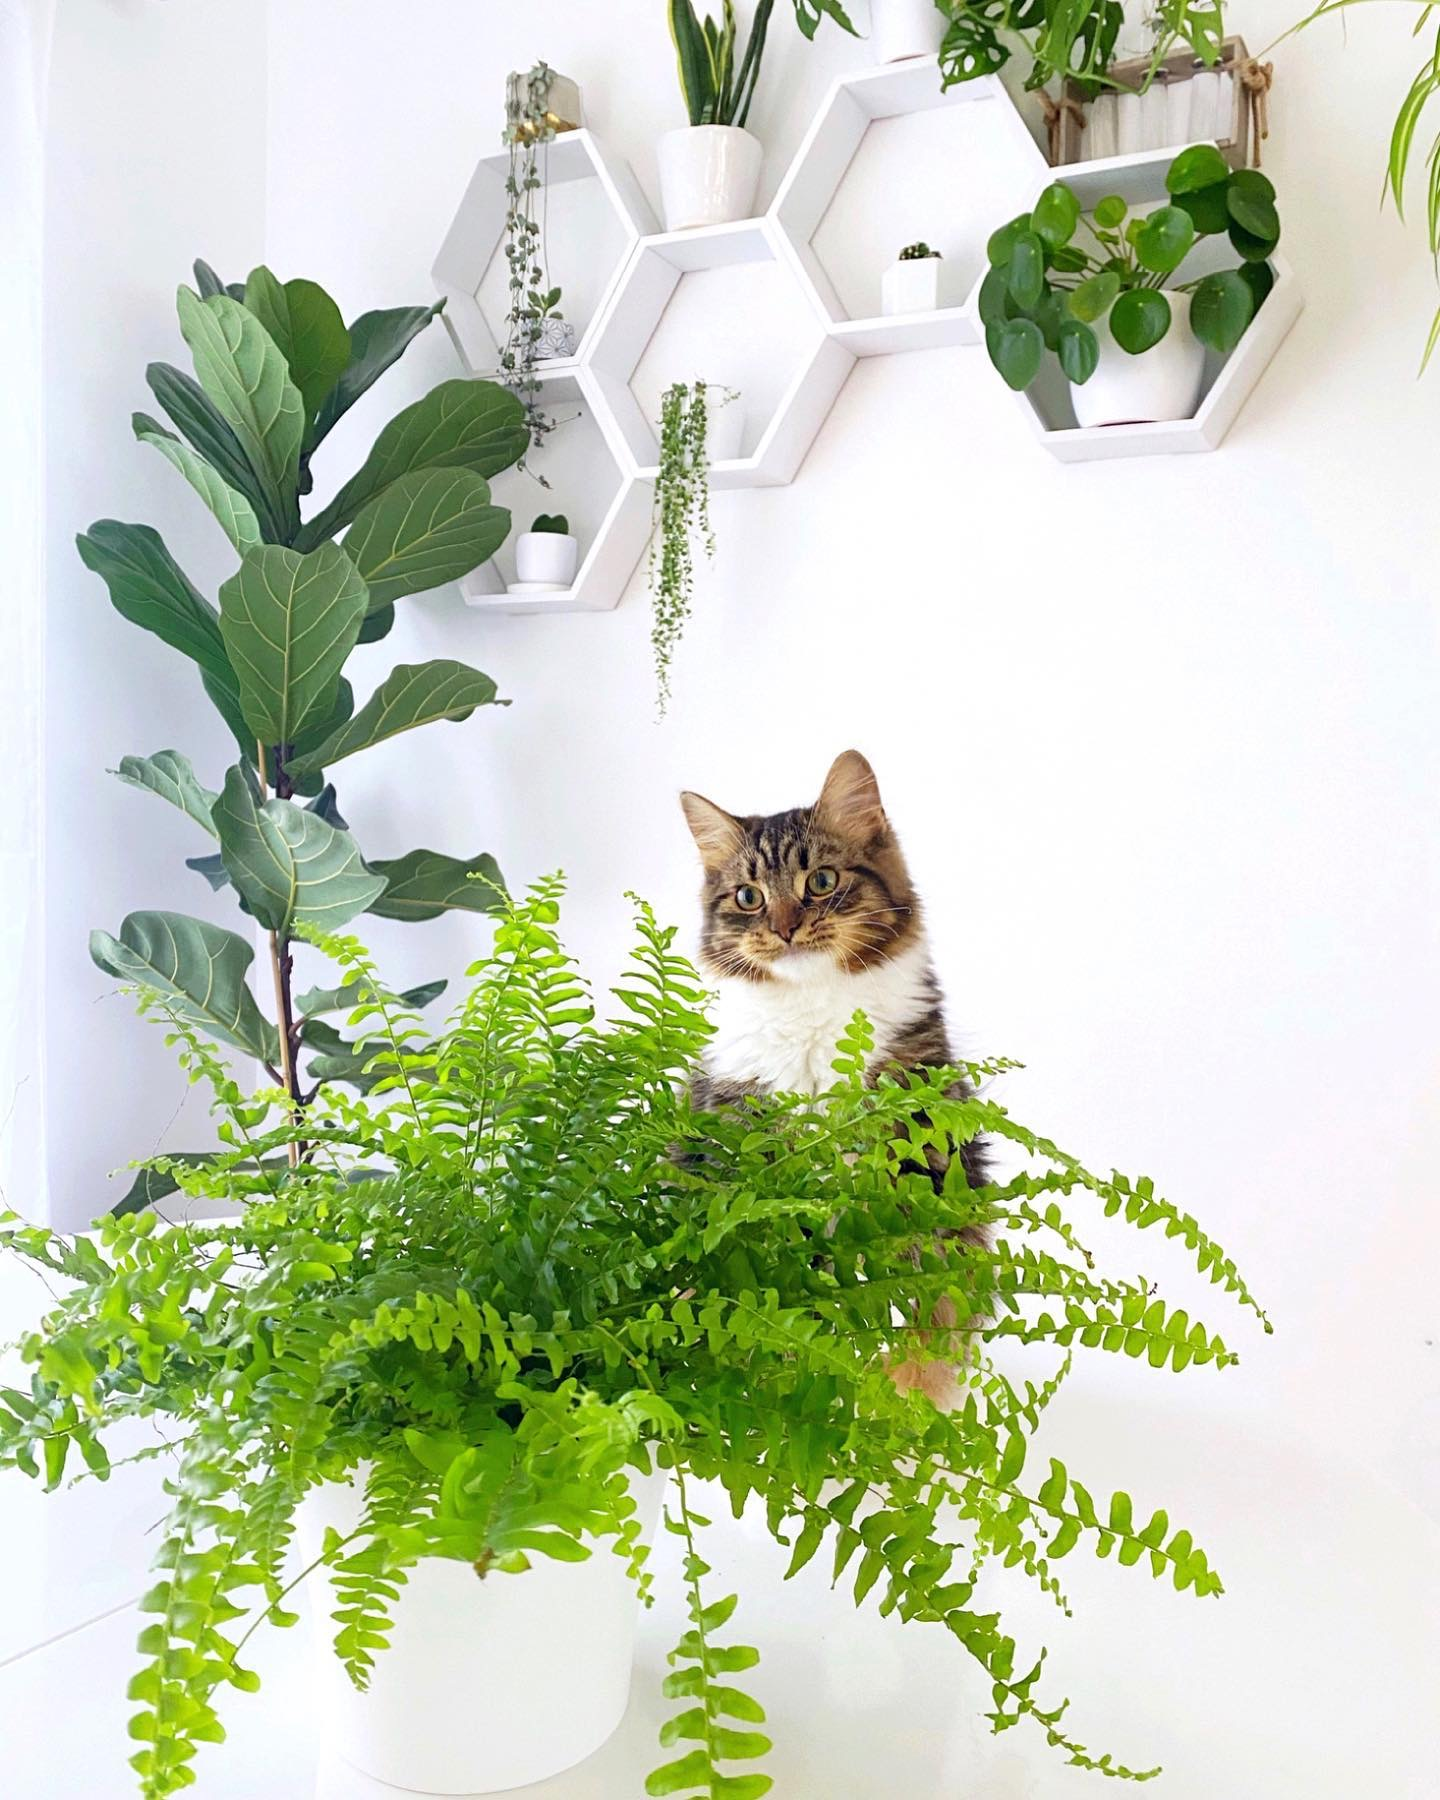 How to care for a Boston Fern